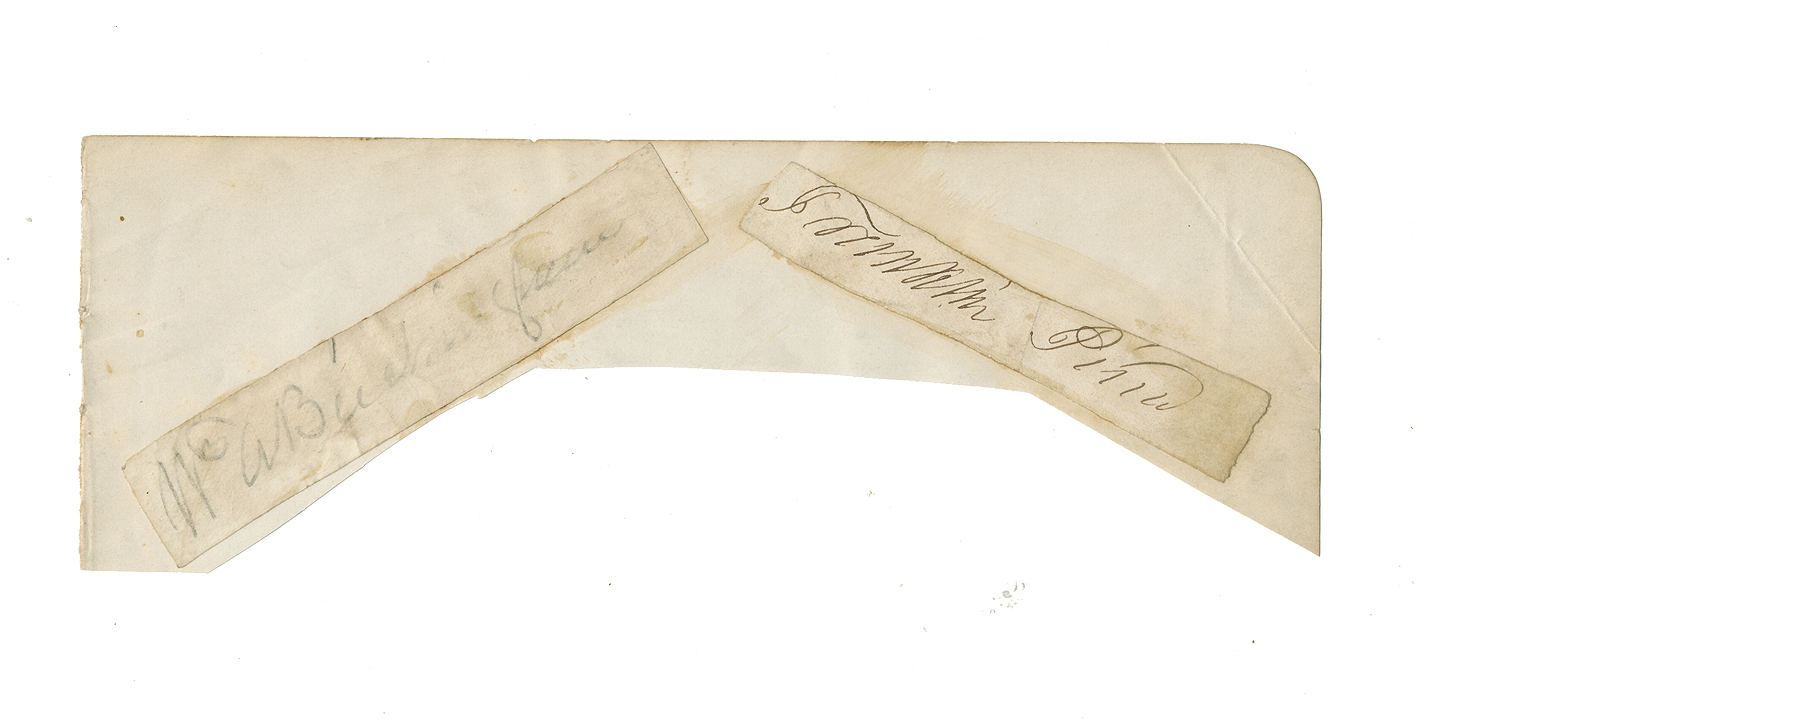 CLIPPED SIGNATURES OF A PRESIDENT AND A GOVERNOR